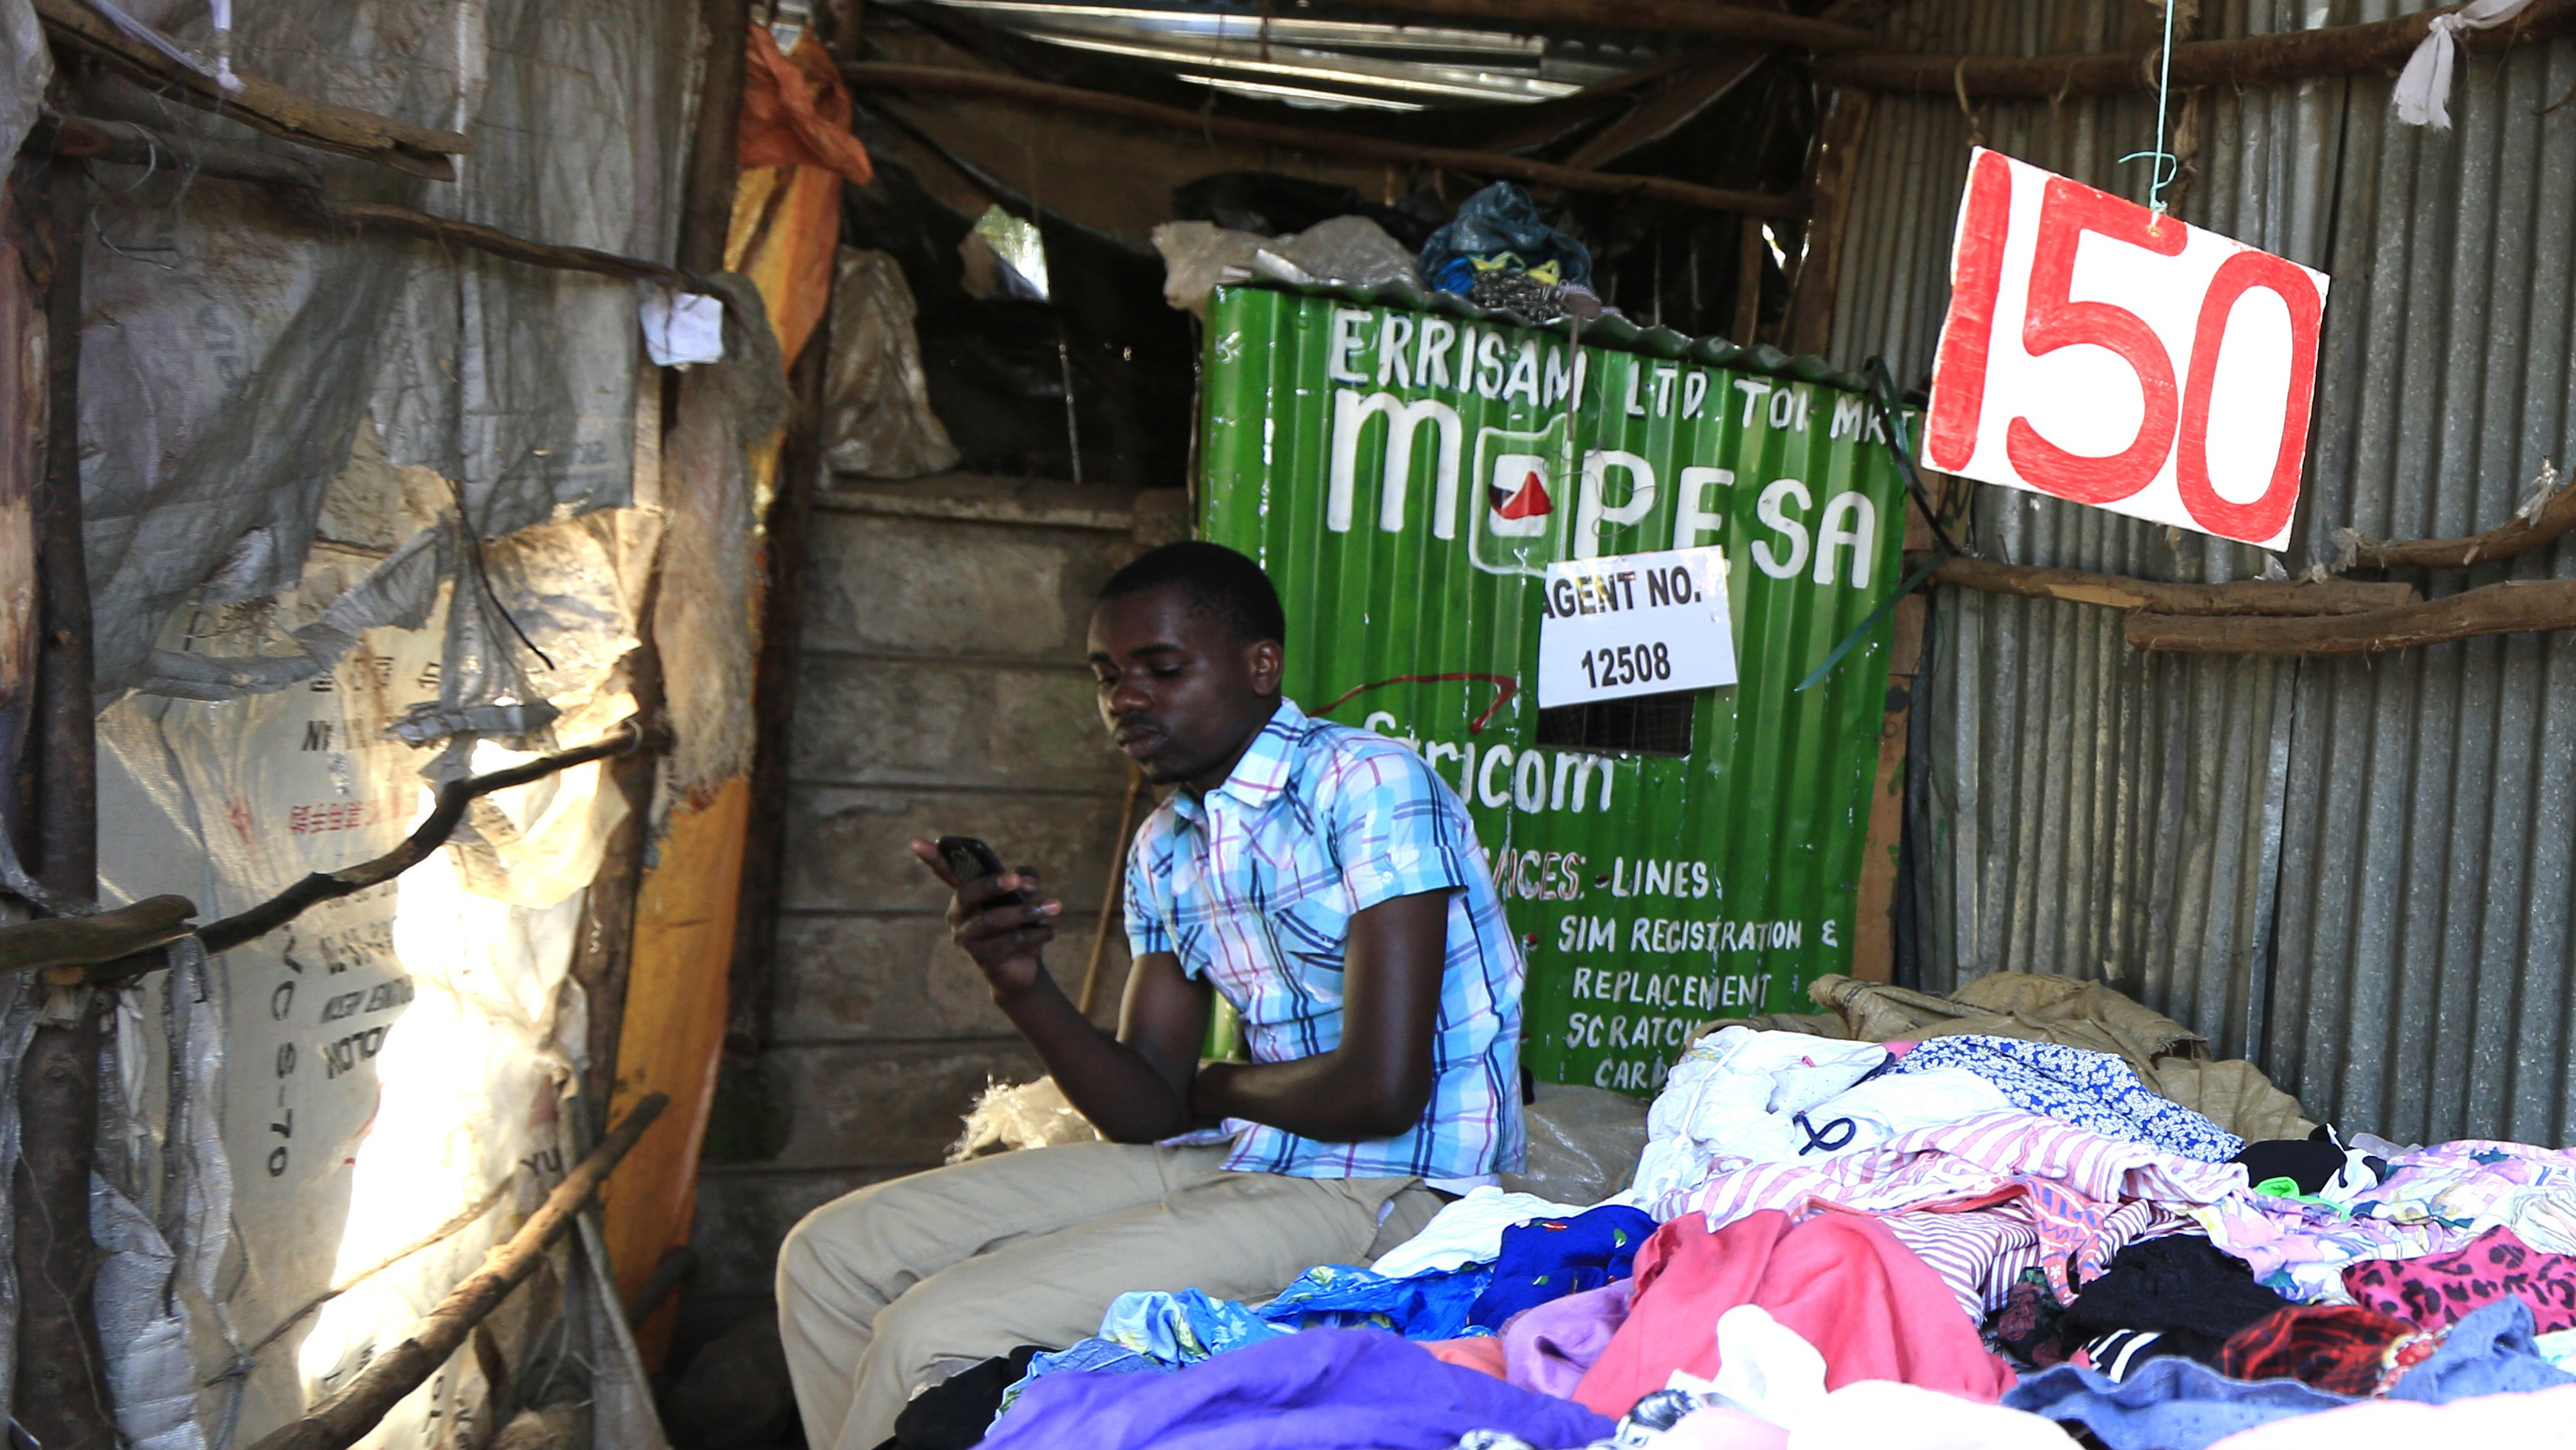 Brian Ochieng waits for M-Pesa customers at his second hand clothing shop in Kibera in Kenya's capital Nairobi December 31, 2014. Safaricom, Kenya's biggest telecoms firm, is a model of how technology can be used to financially include millions of people with mobile telephones but without access to traditional infrastructure such as the banks that are available to the wealthy or those living in cities. Safaricom in 2007 pioneered its M-Pesa mobile money transfer technology, now used across Africa, Asia and Europe. It proved that money can be made from people who earn a few dollars a day. REUTERS/Noor Khamis (KENYA - Tags: BUSINESS SOCIETY SCIENCE TECHNOLOGY TELECOMS) - RTR4JQ0Y